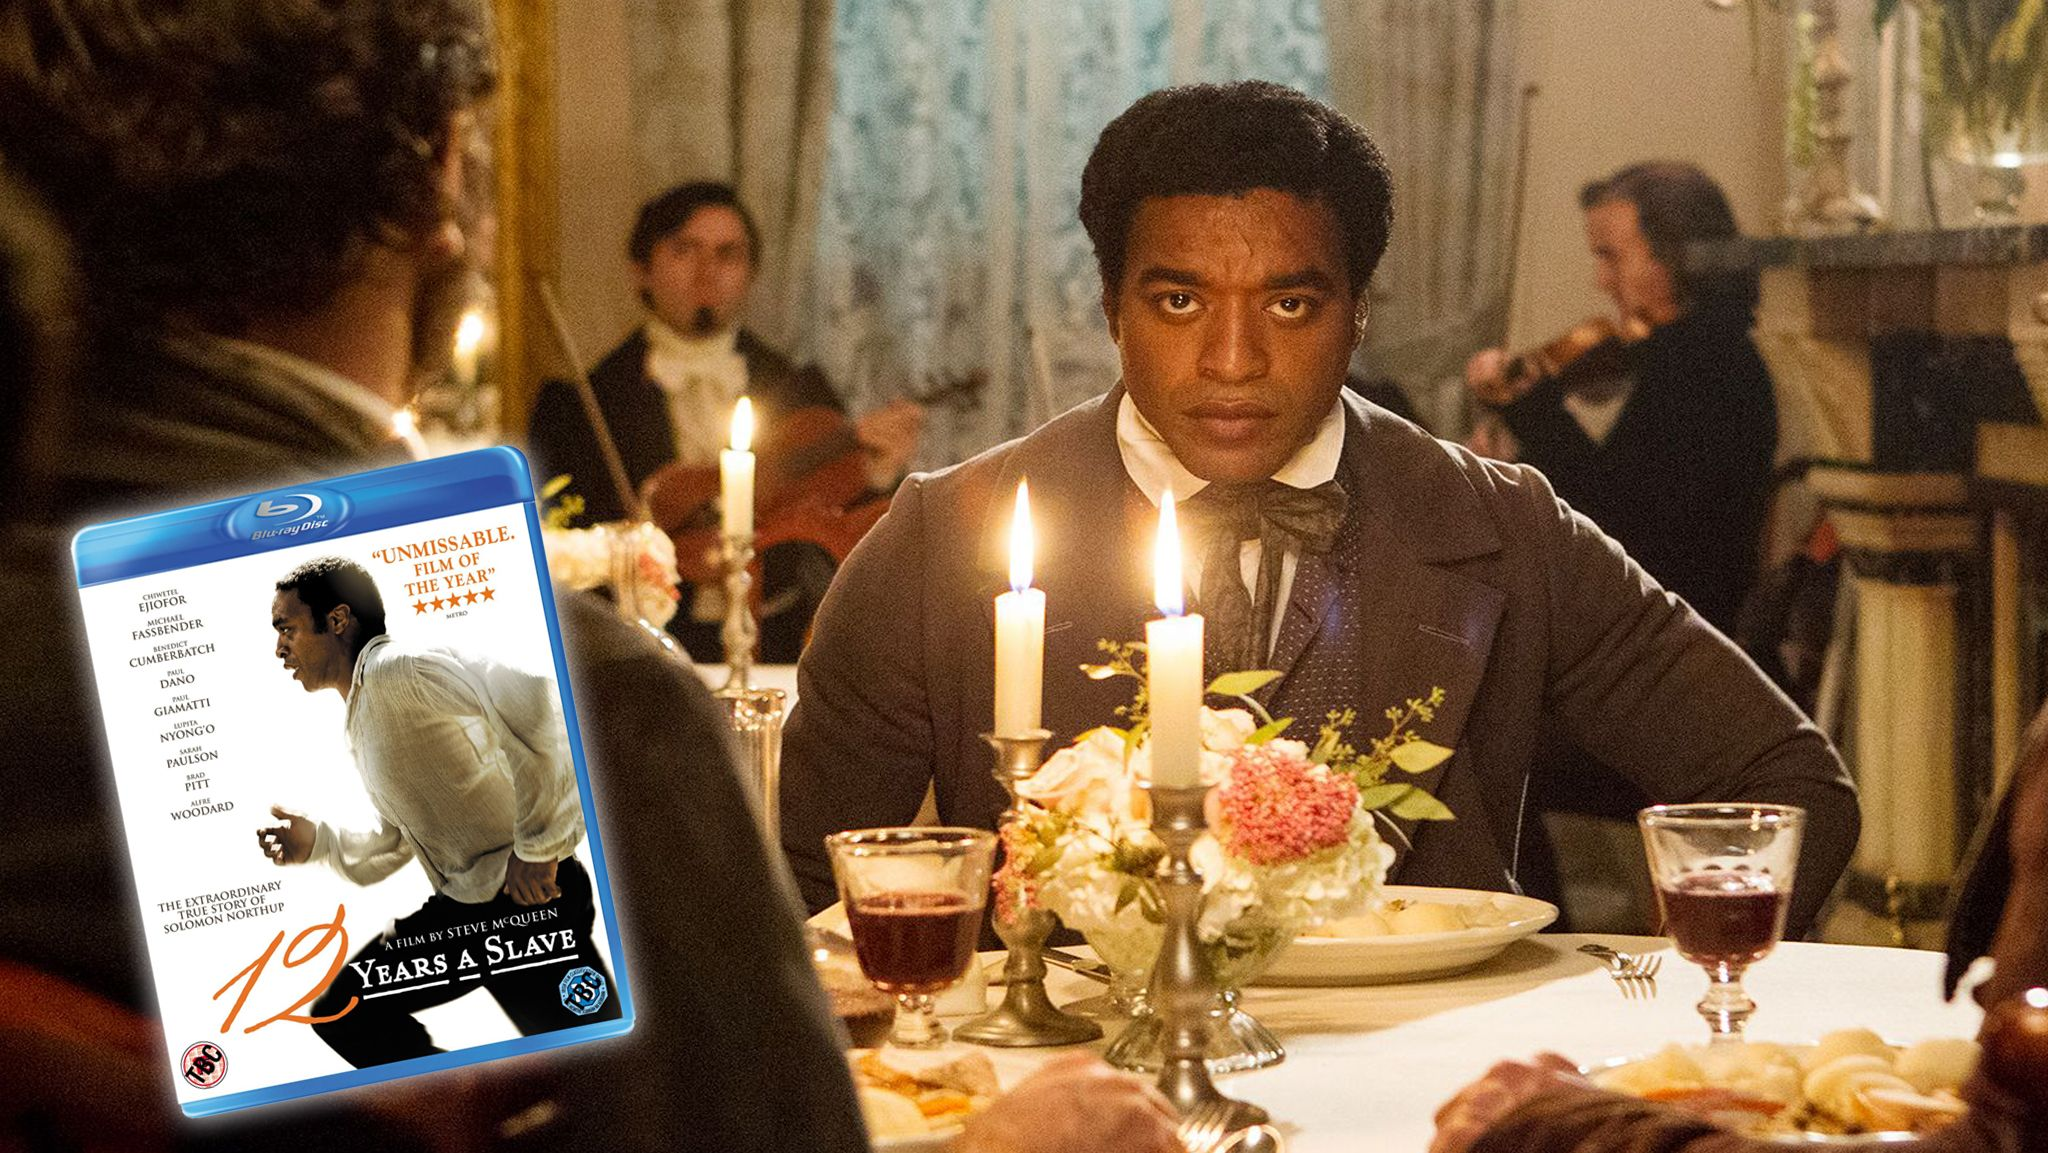 On DVD This Month: 12 Years a Slave